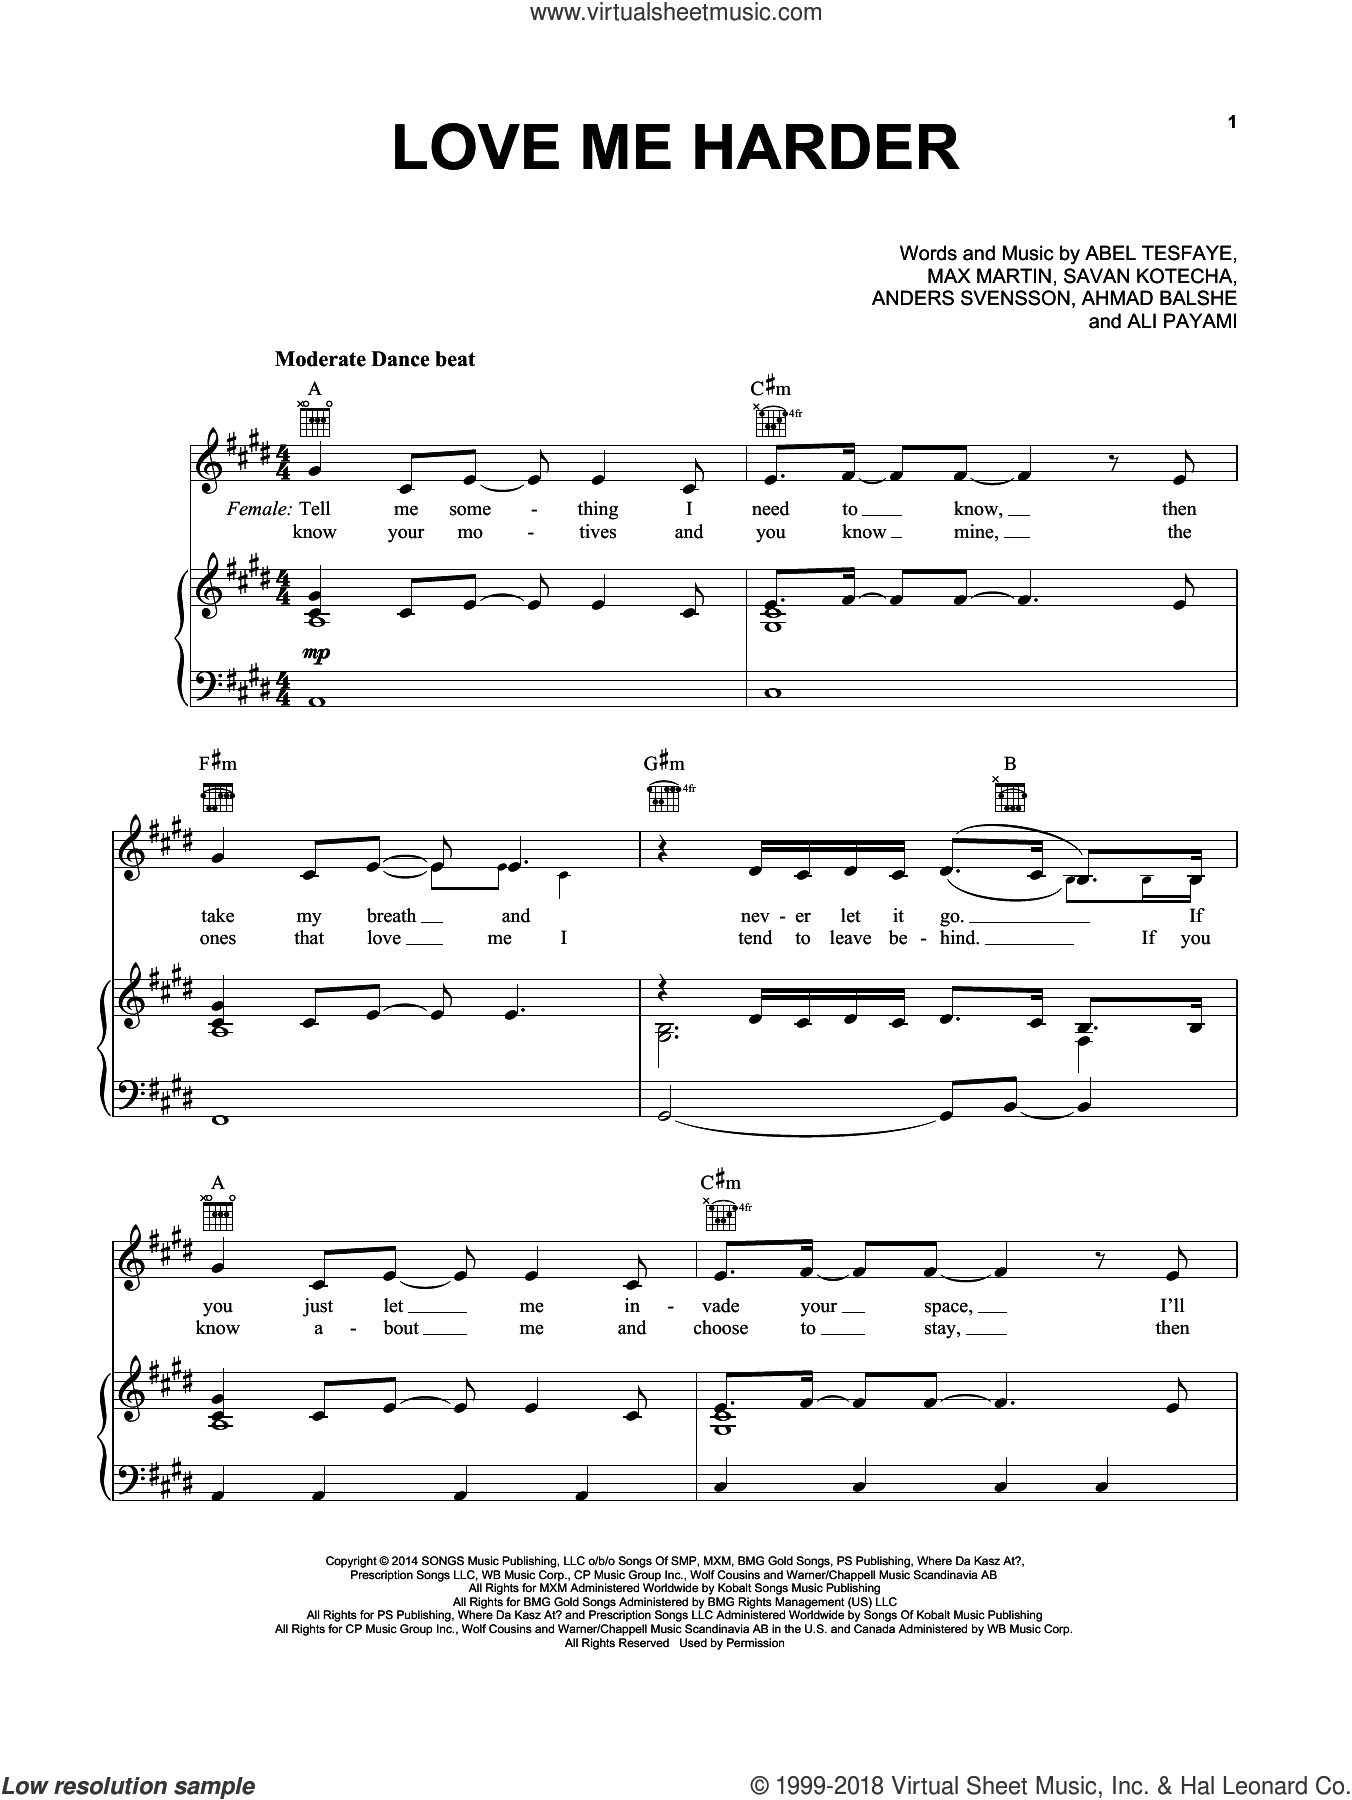 Love Me Harder sheet music for voice, piano or guitar by Ariana Grande & The Weeknd, Ariana Grande, Abel Tesfaye, Ahmad Balshe, Ali Payami, Max Martin, Peter Svensson and Savan Kotecha, intermediate skill level